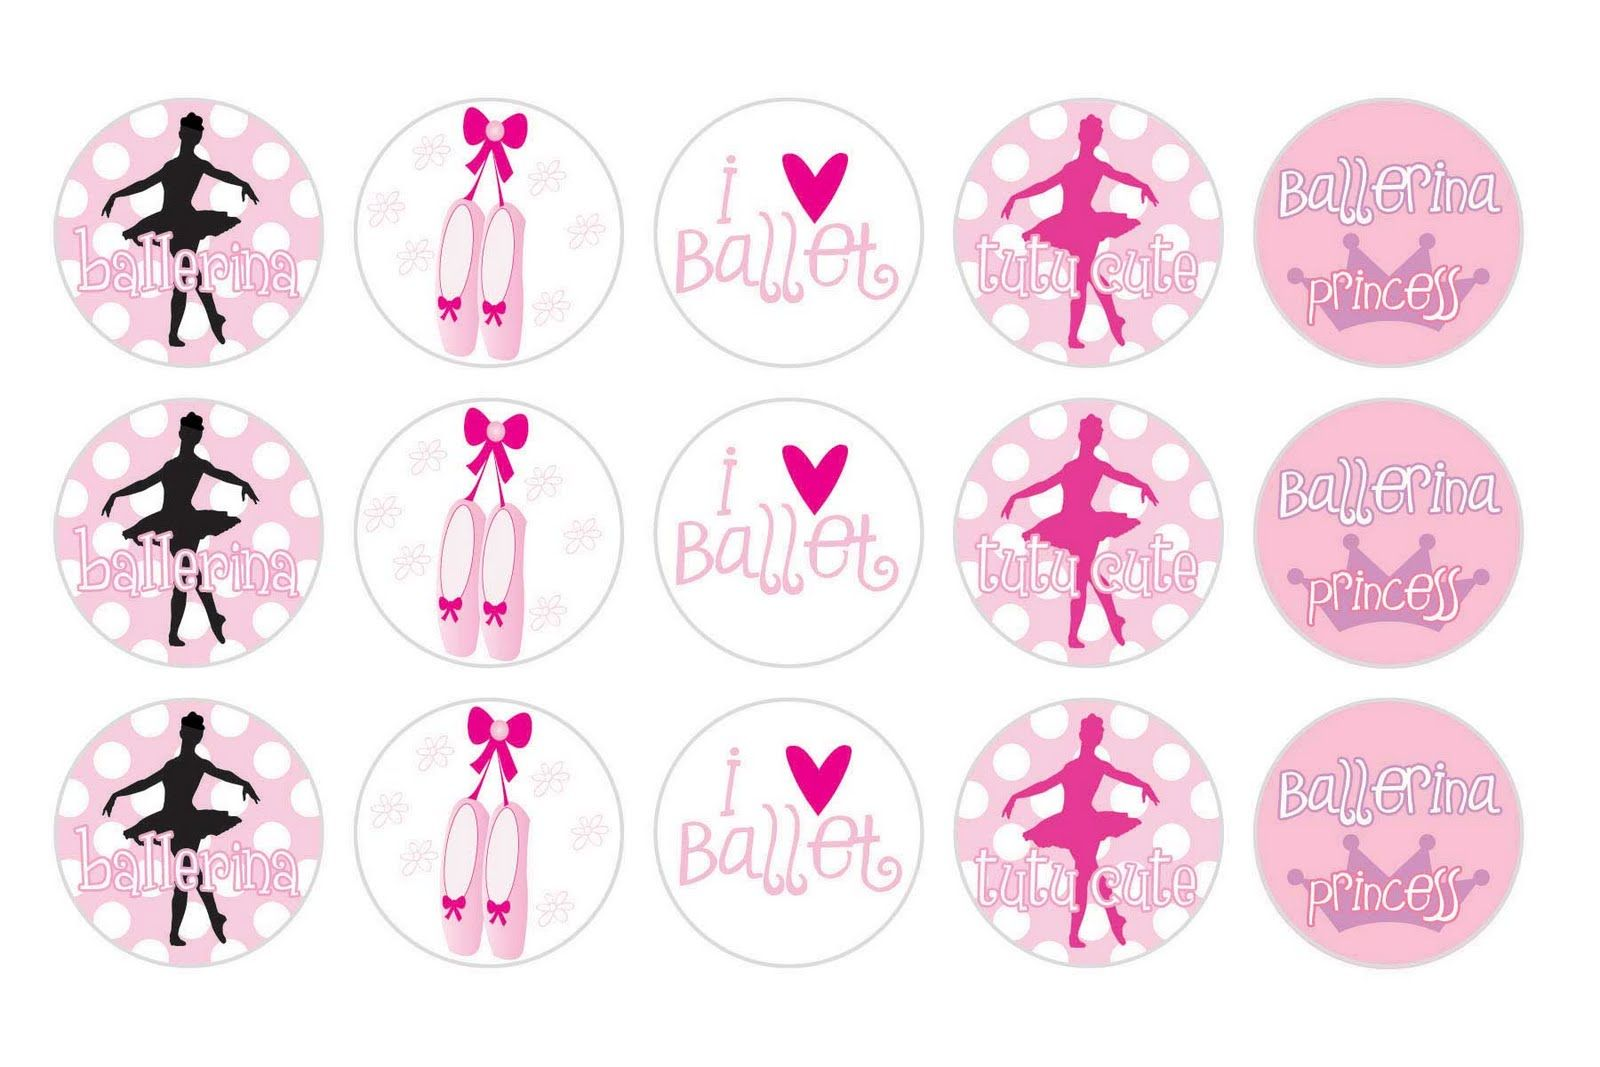 Uncategorized Ballerina Printables its a small www free printable ballerina bottle cap image design design